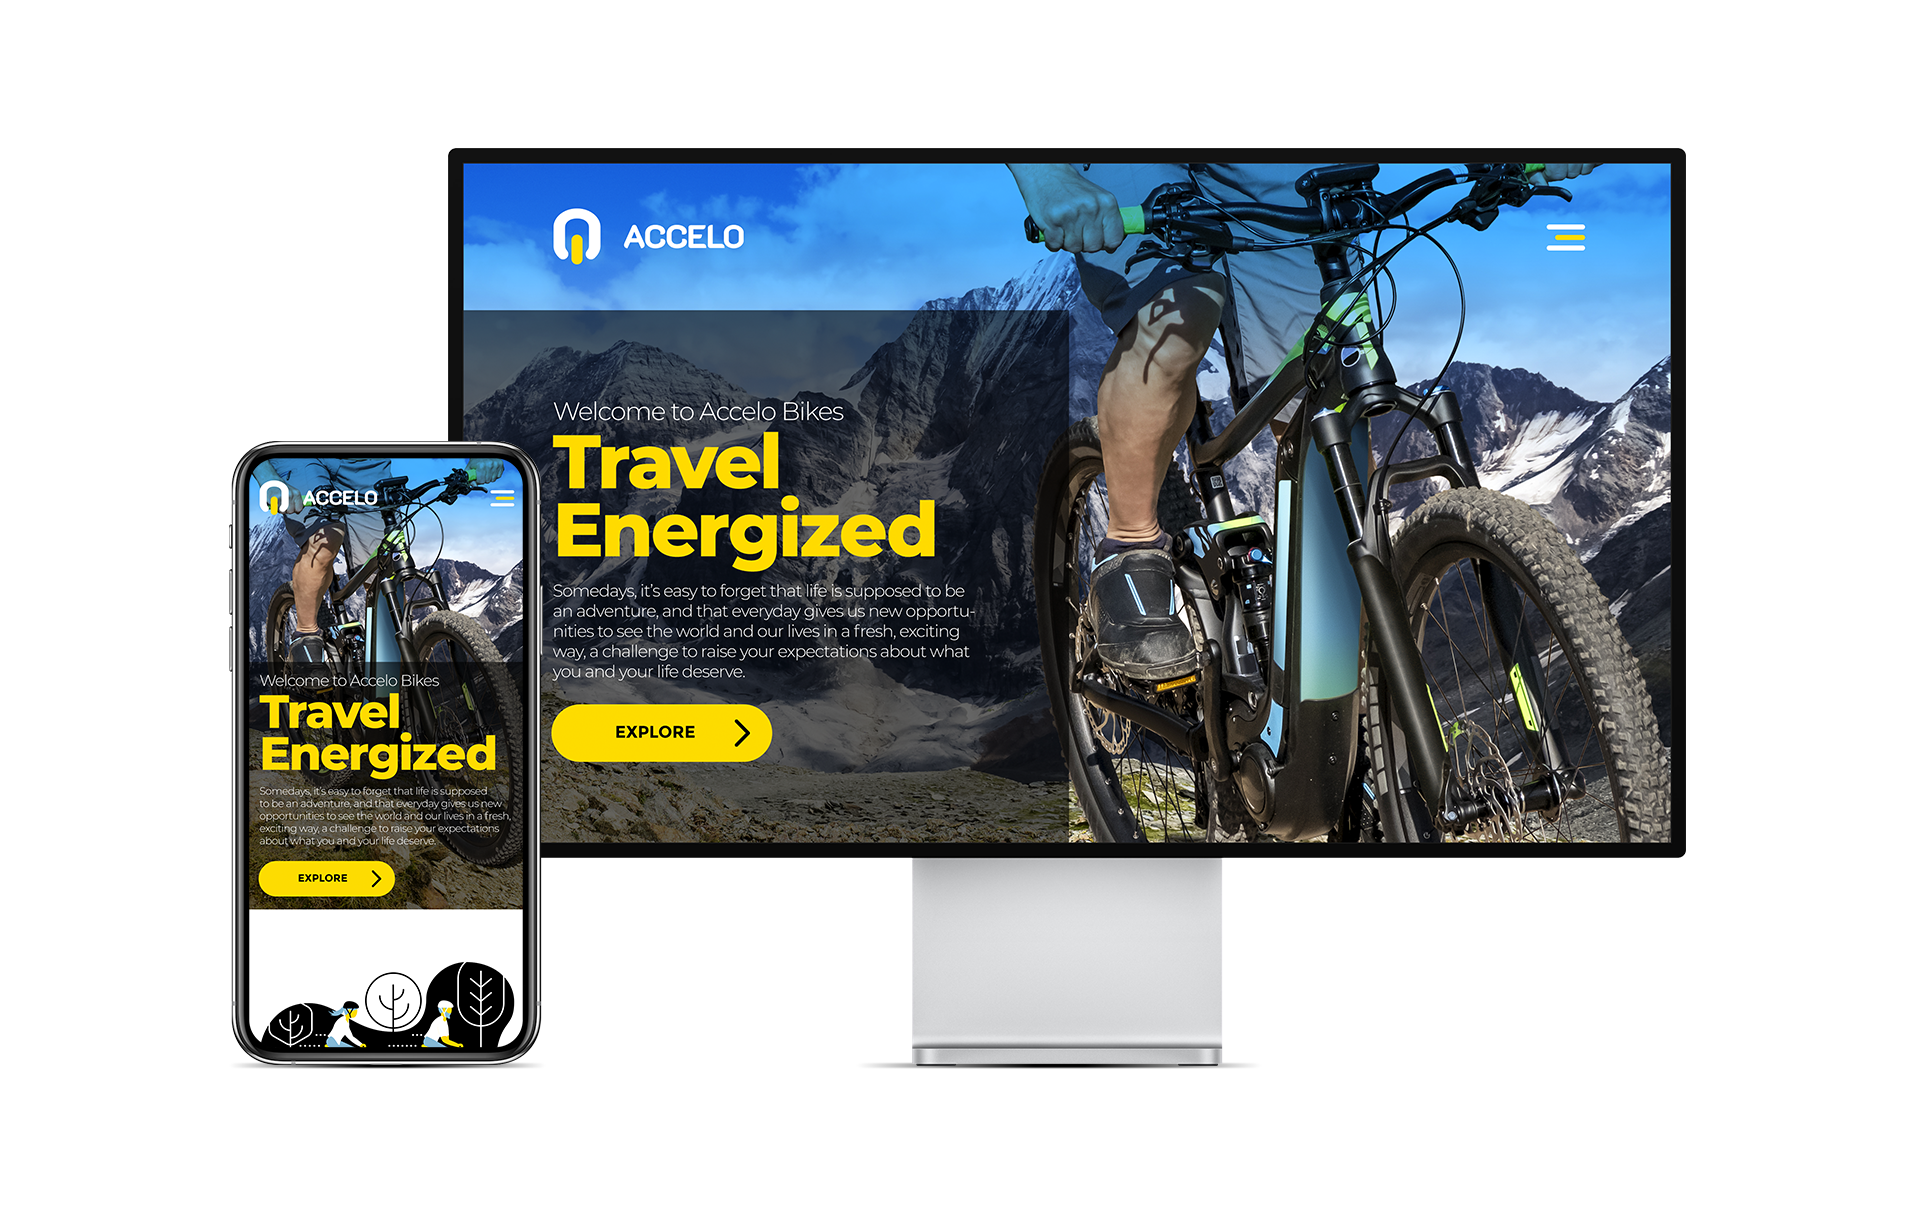 Accelo Bikes Shopify Website Design and Development by Creatibly's Scott Luscombe